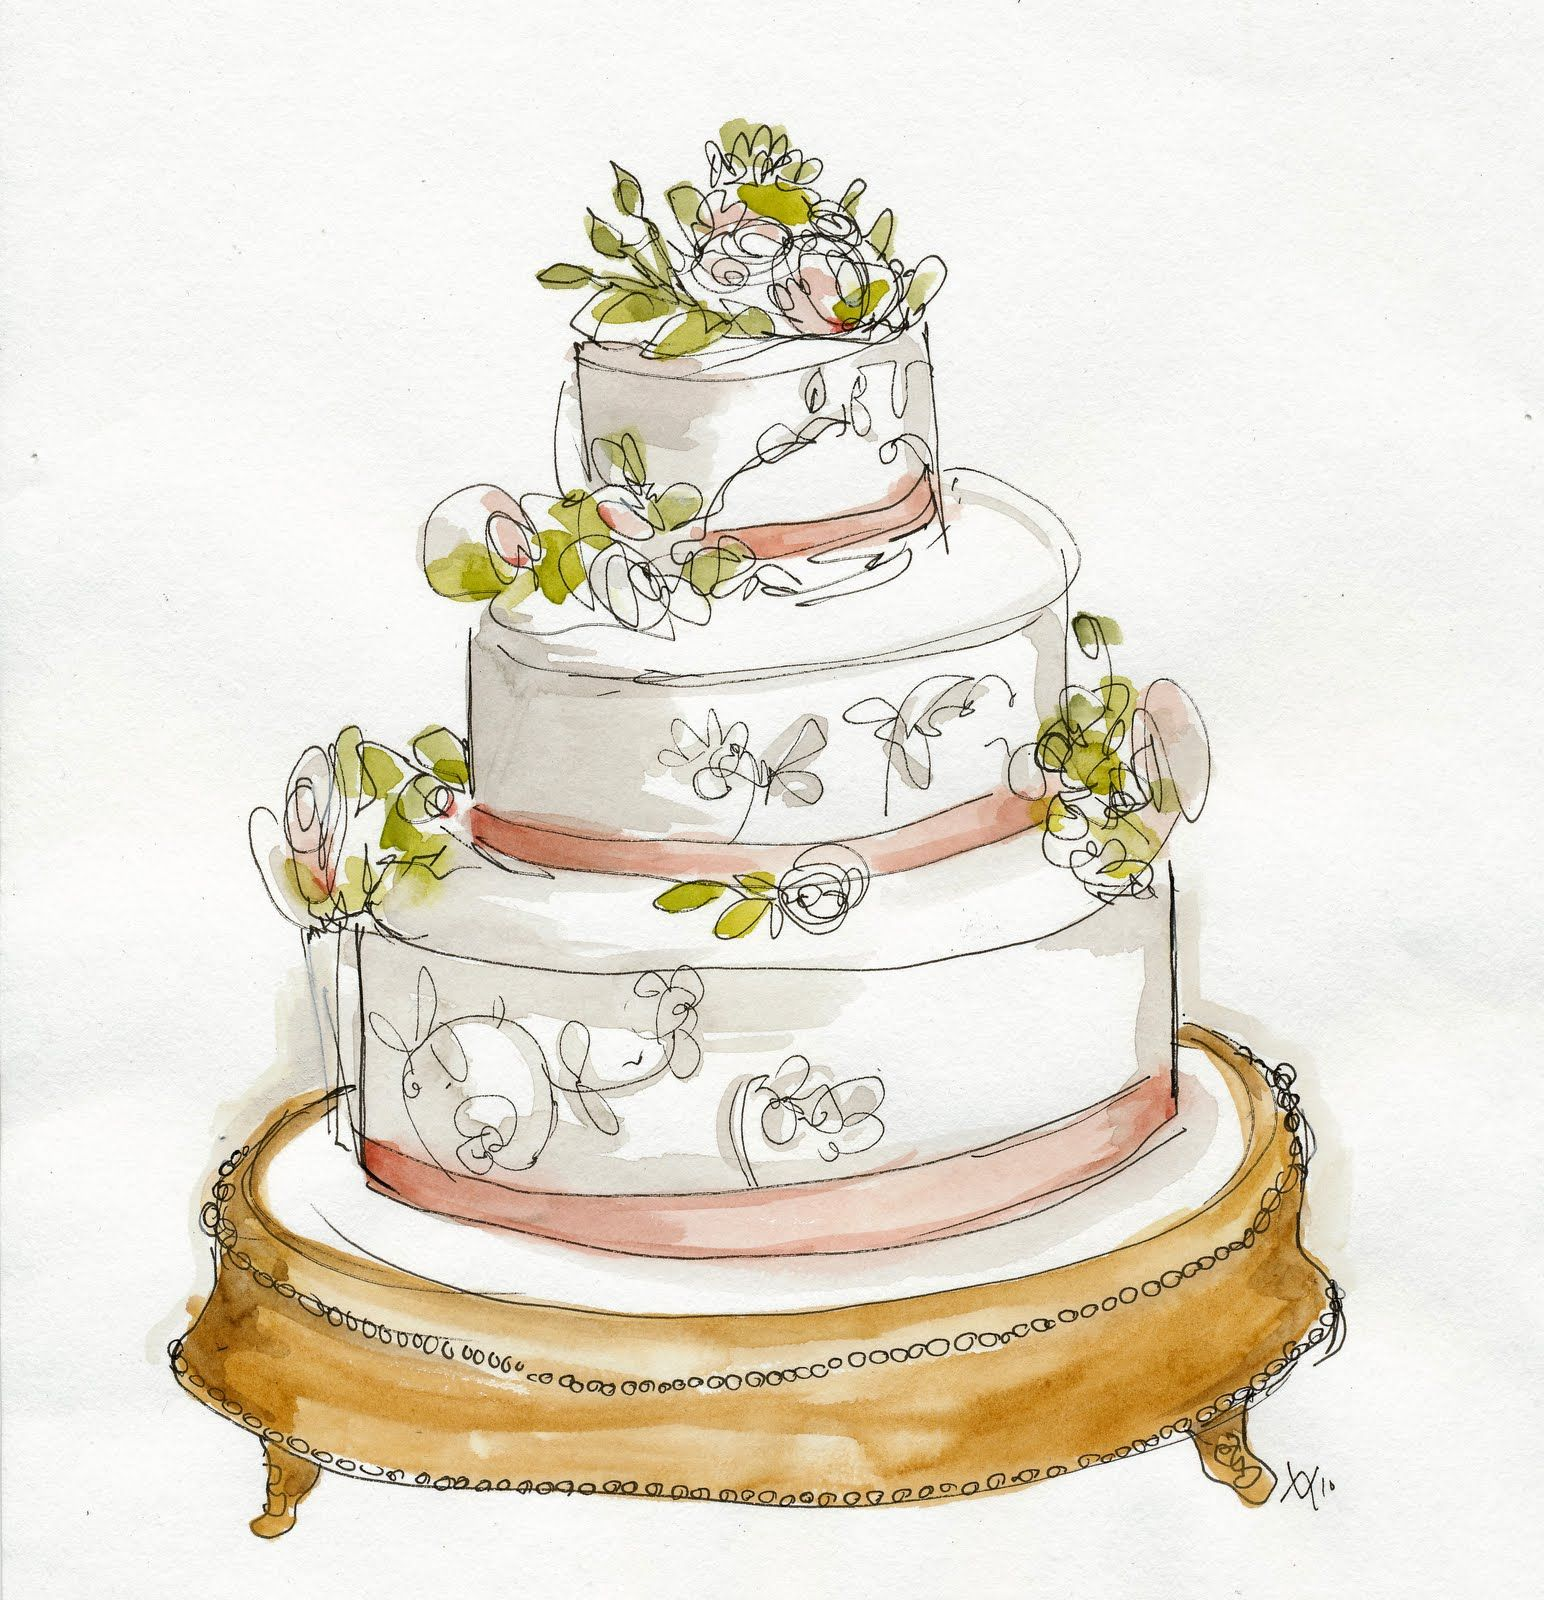 Img 0001 Jpg 1 544 1 600 Pixels Wedding Cake Drawing Wedding